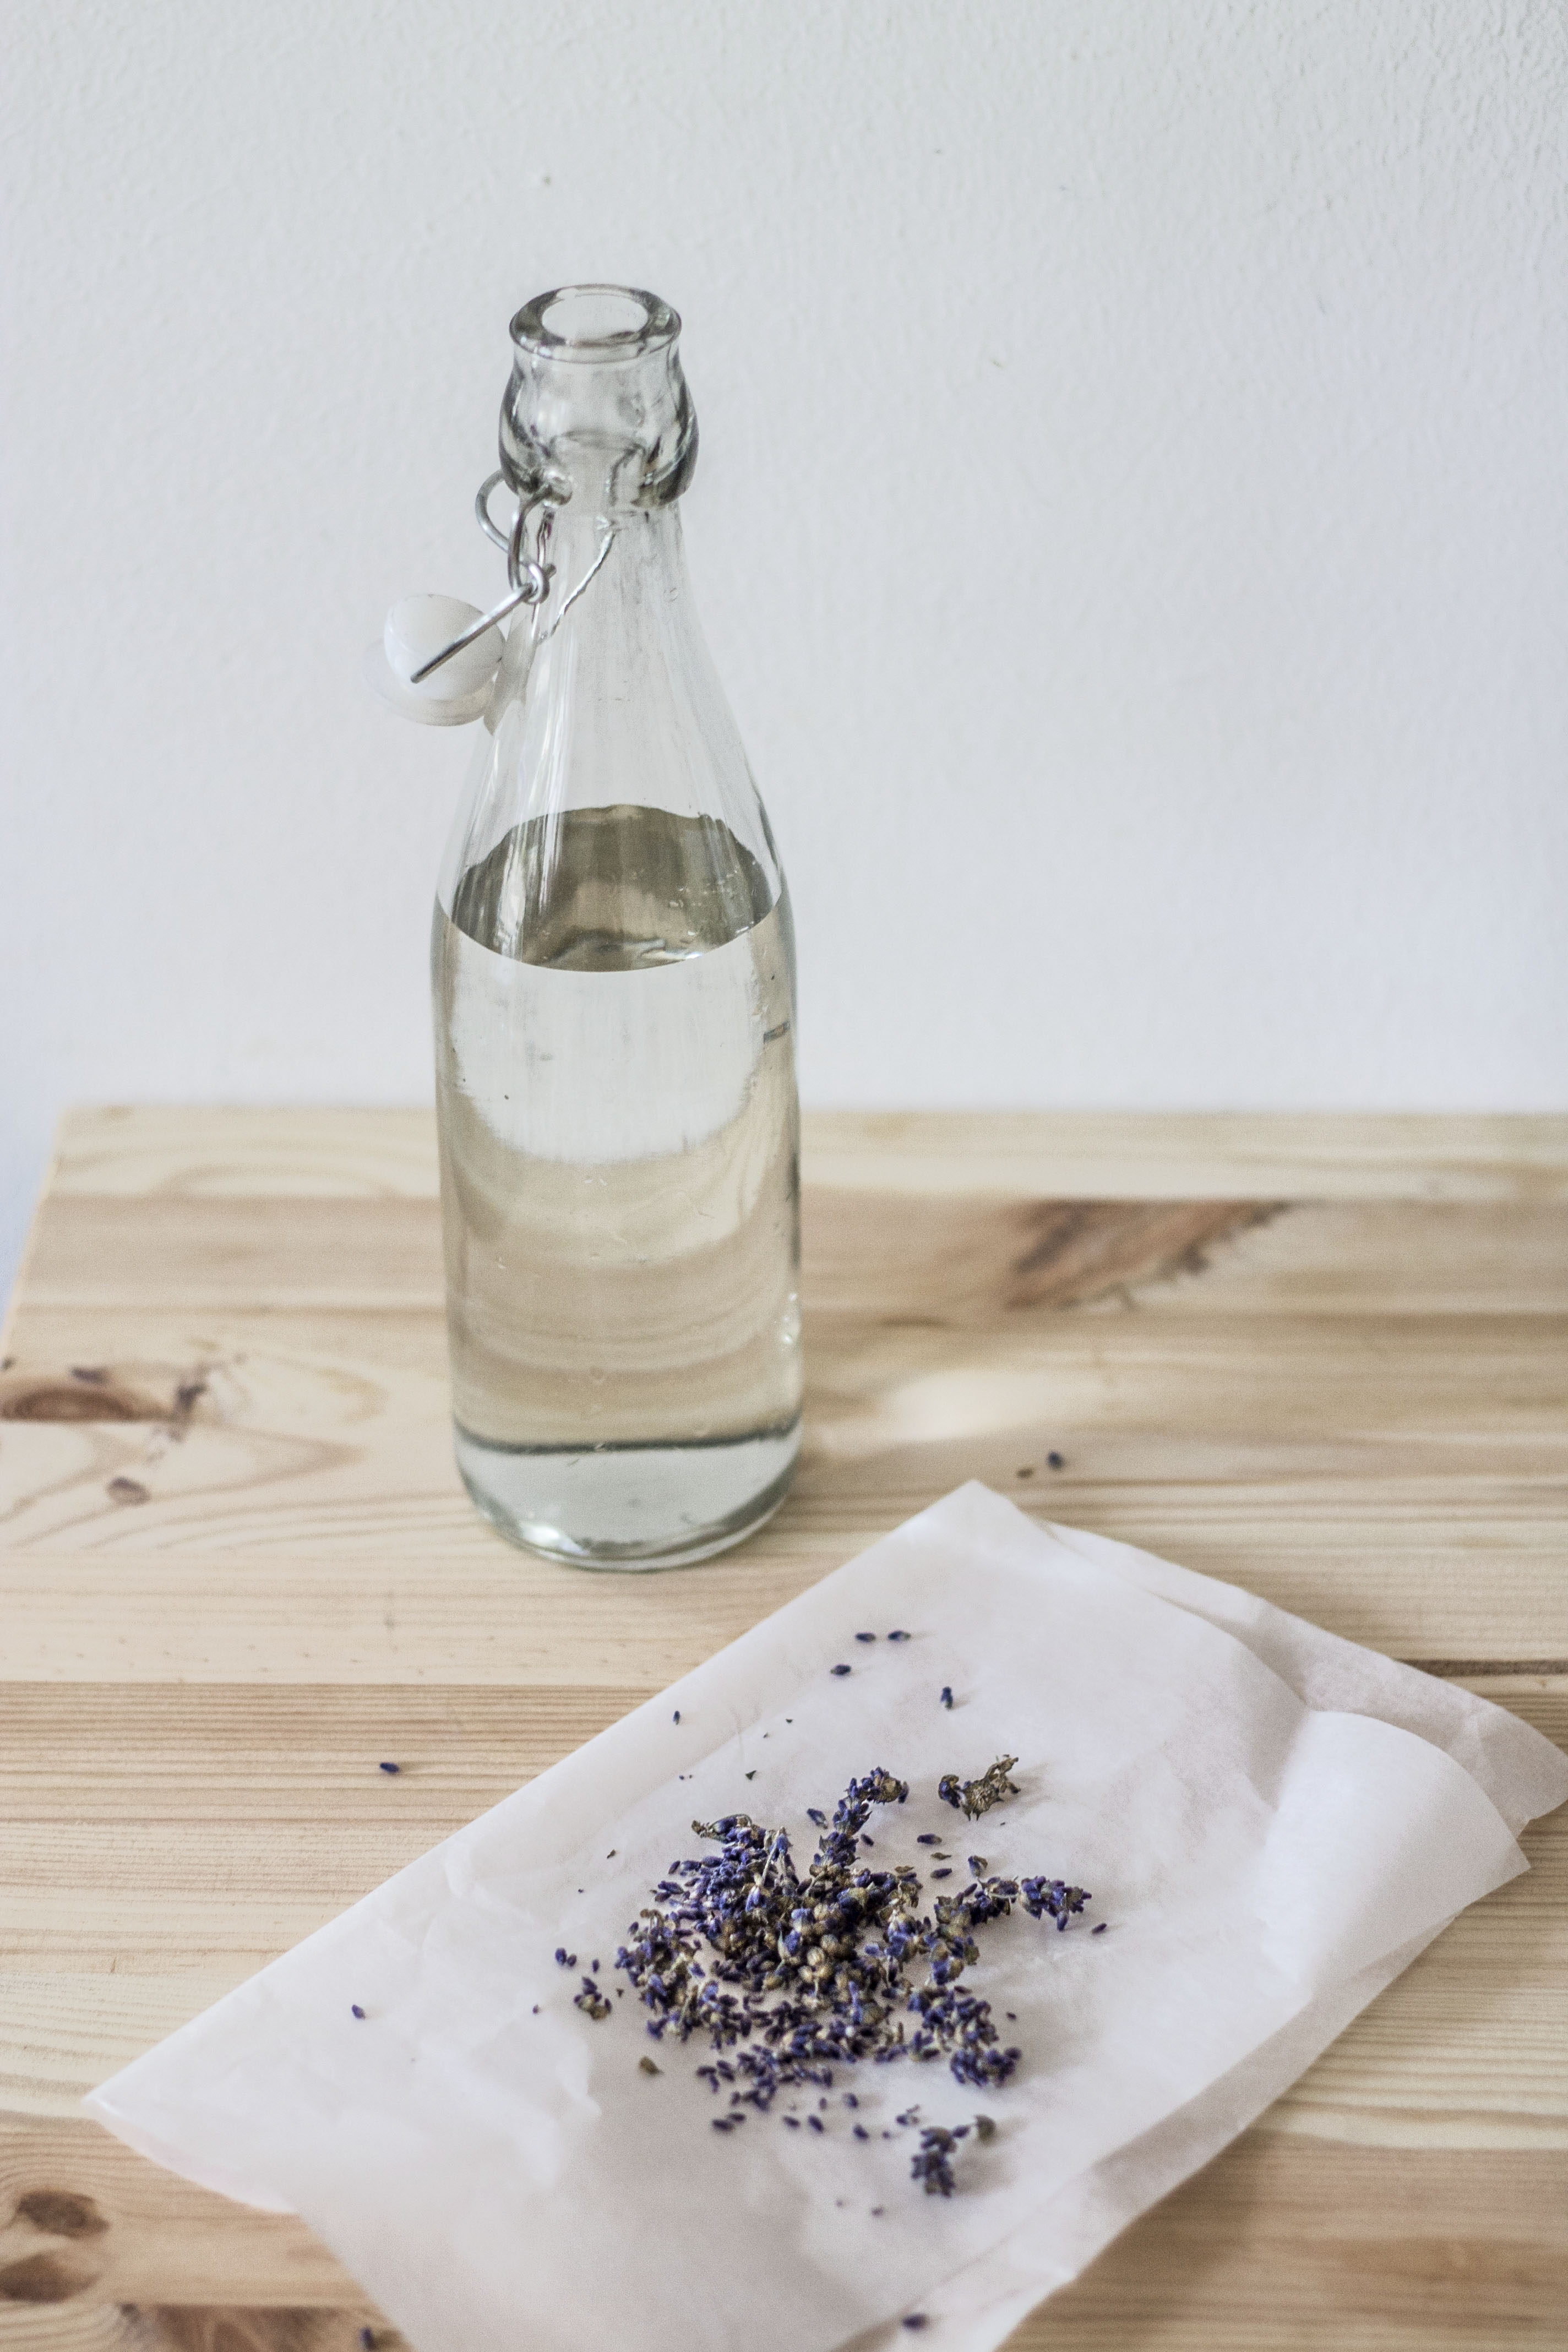 Lavender essence recipe